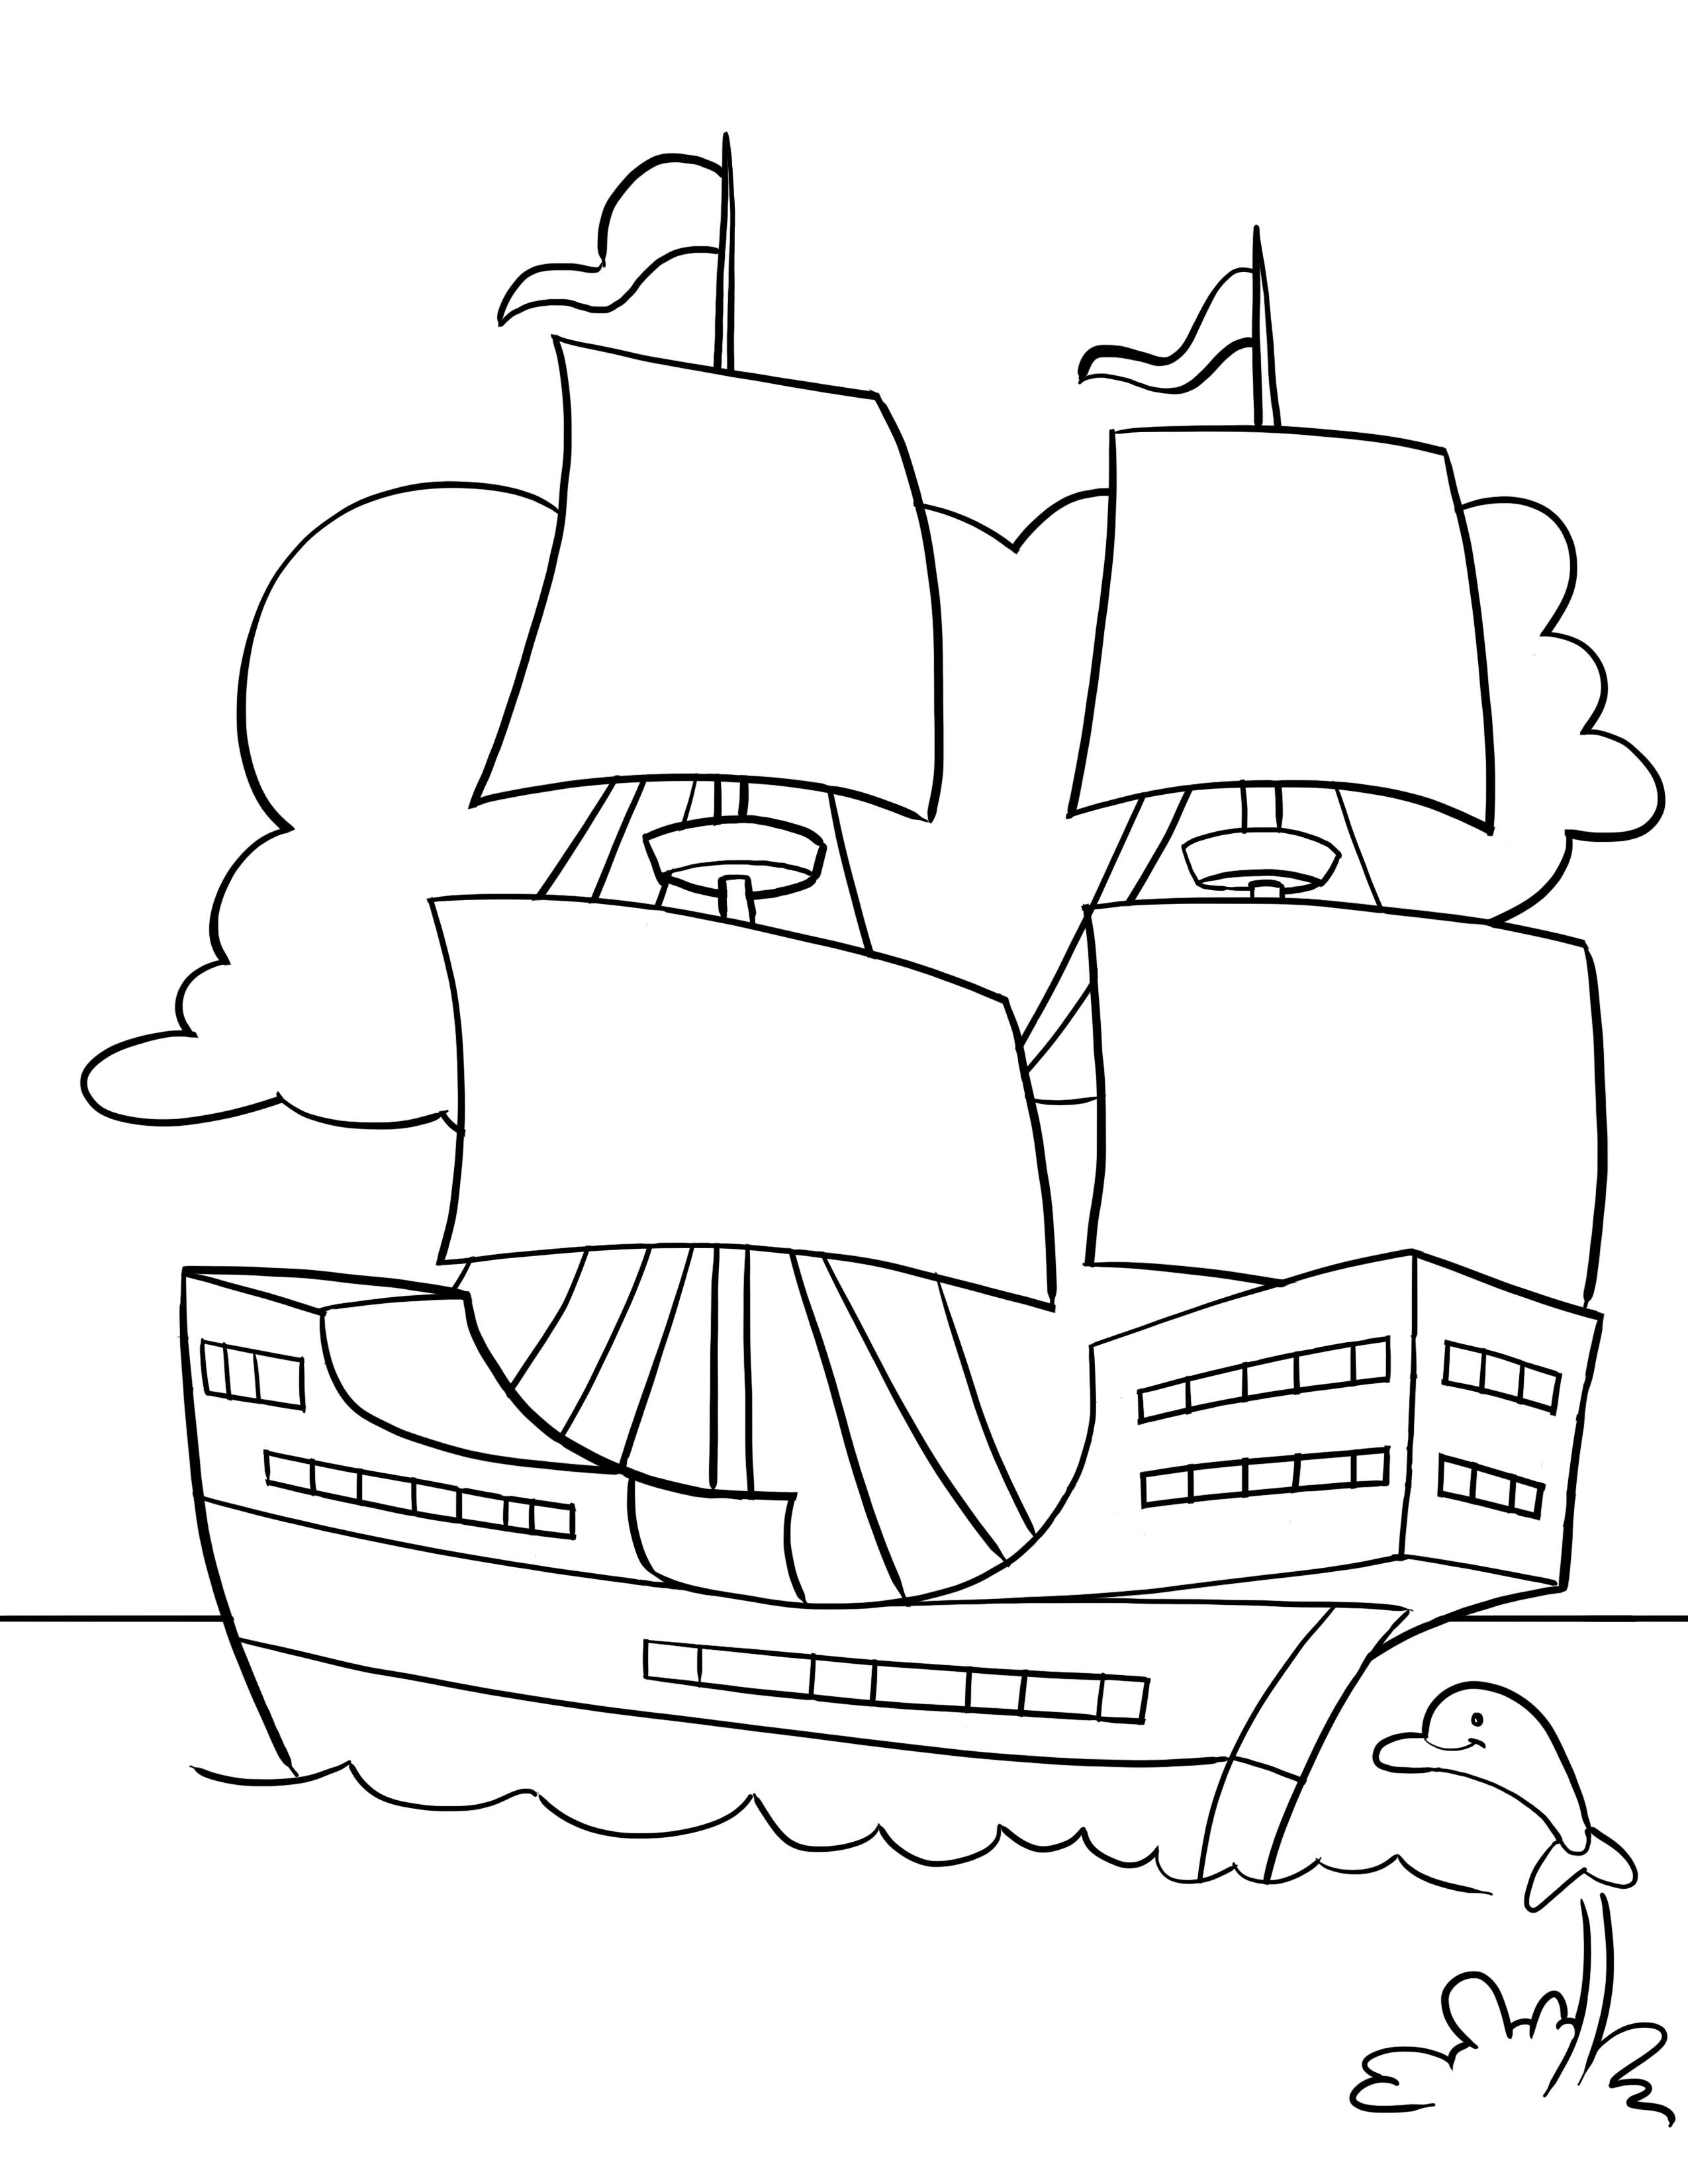 mayflower boat coloring pages - photo#30